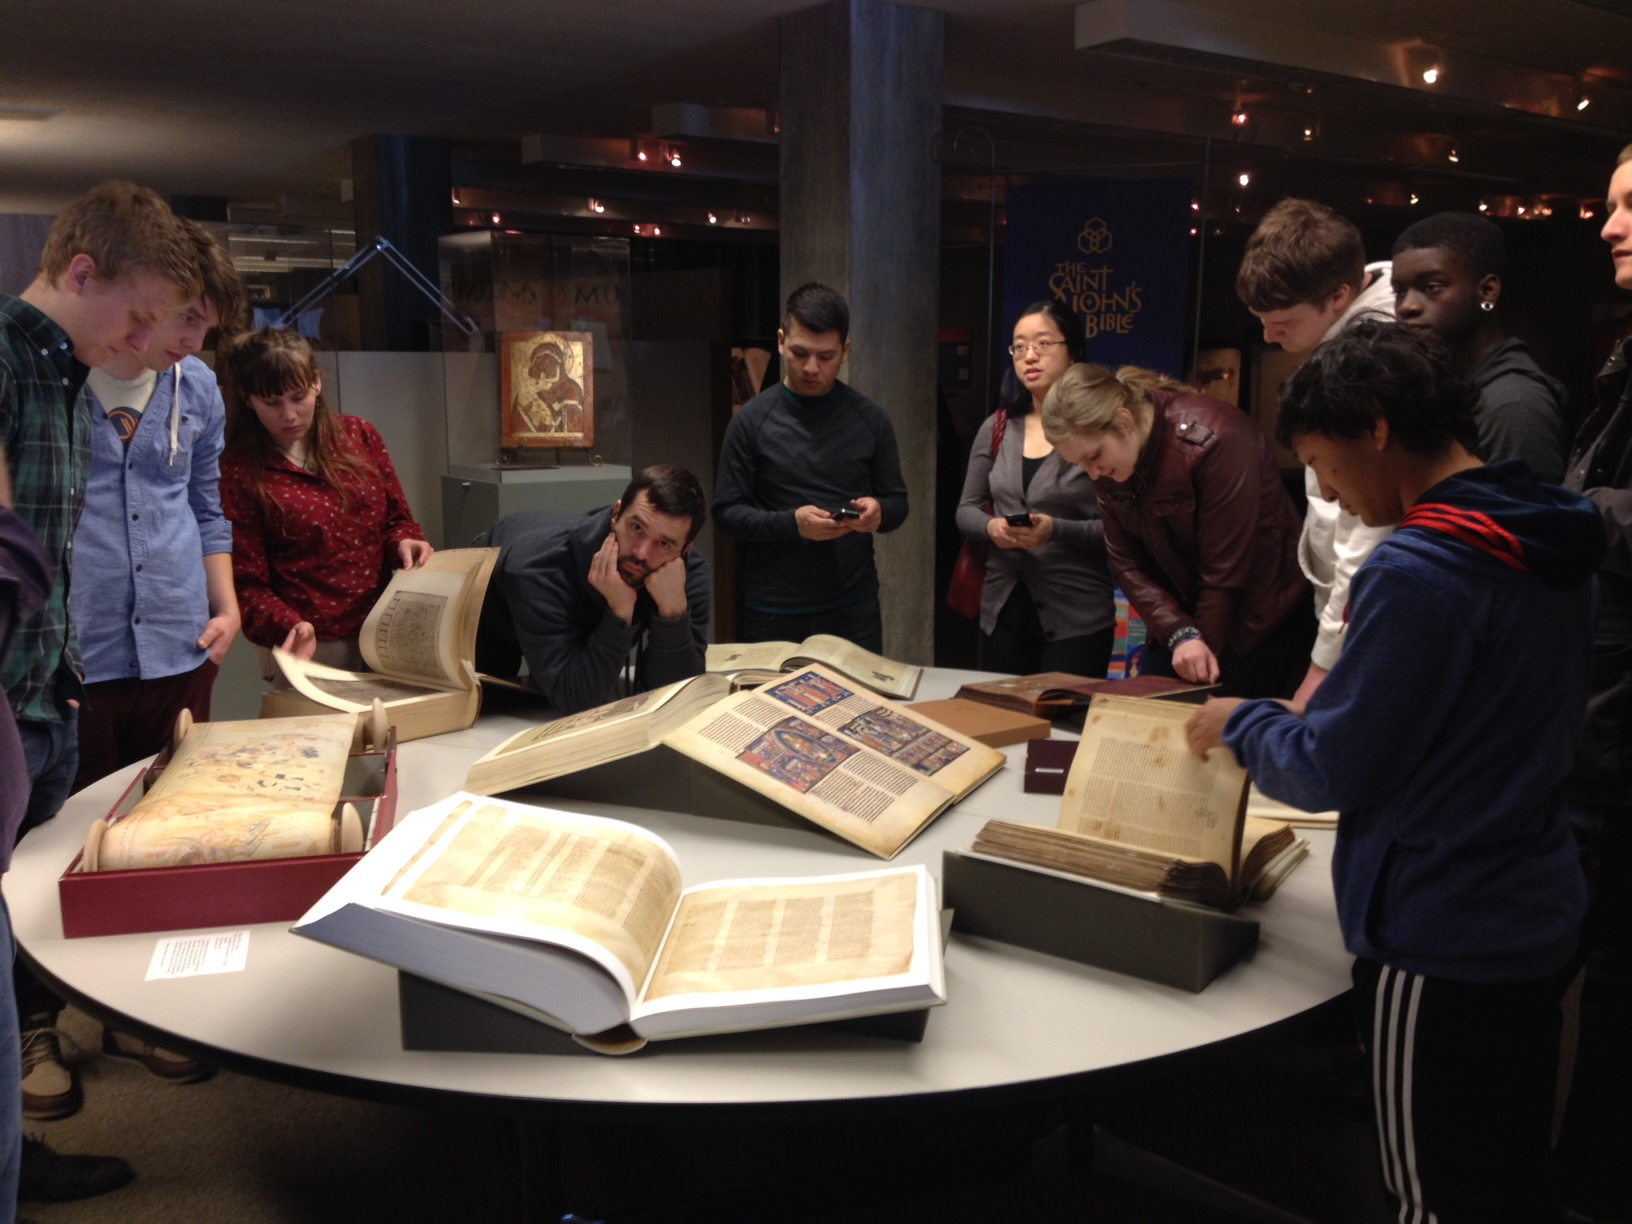 NCU students visit the Hill Museum & Manuscript Library - Saint John's Abbey and University -Collegeville, Minnesota